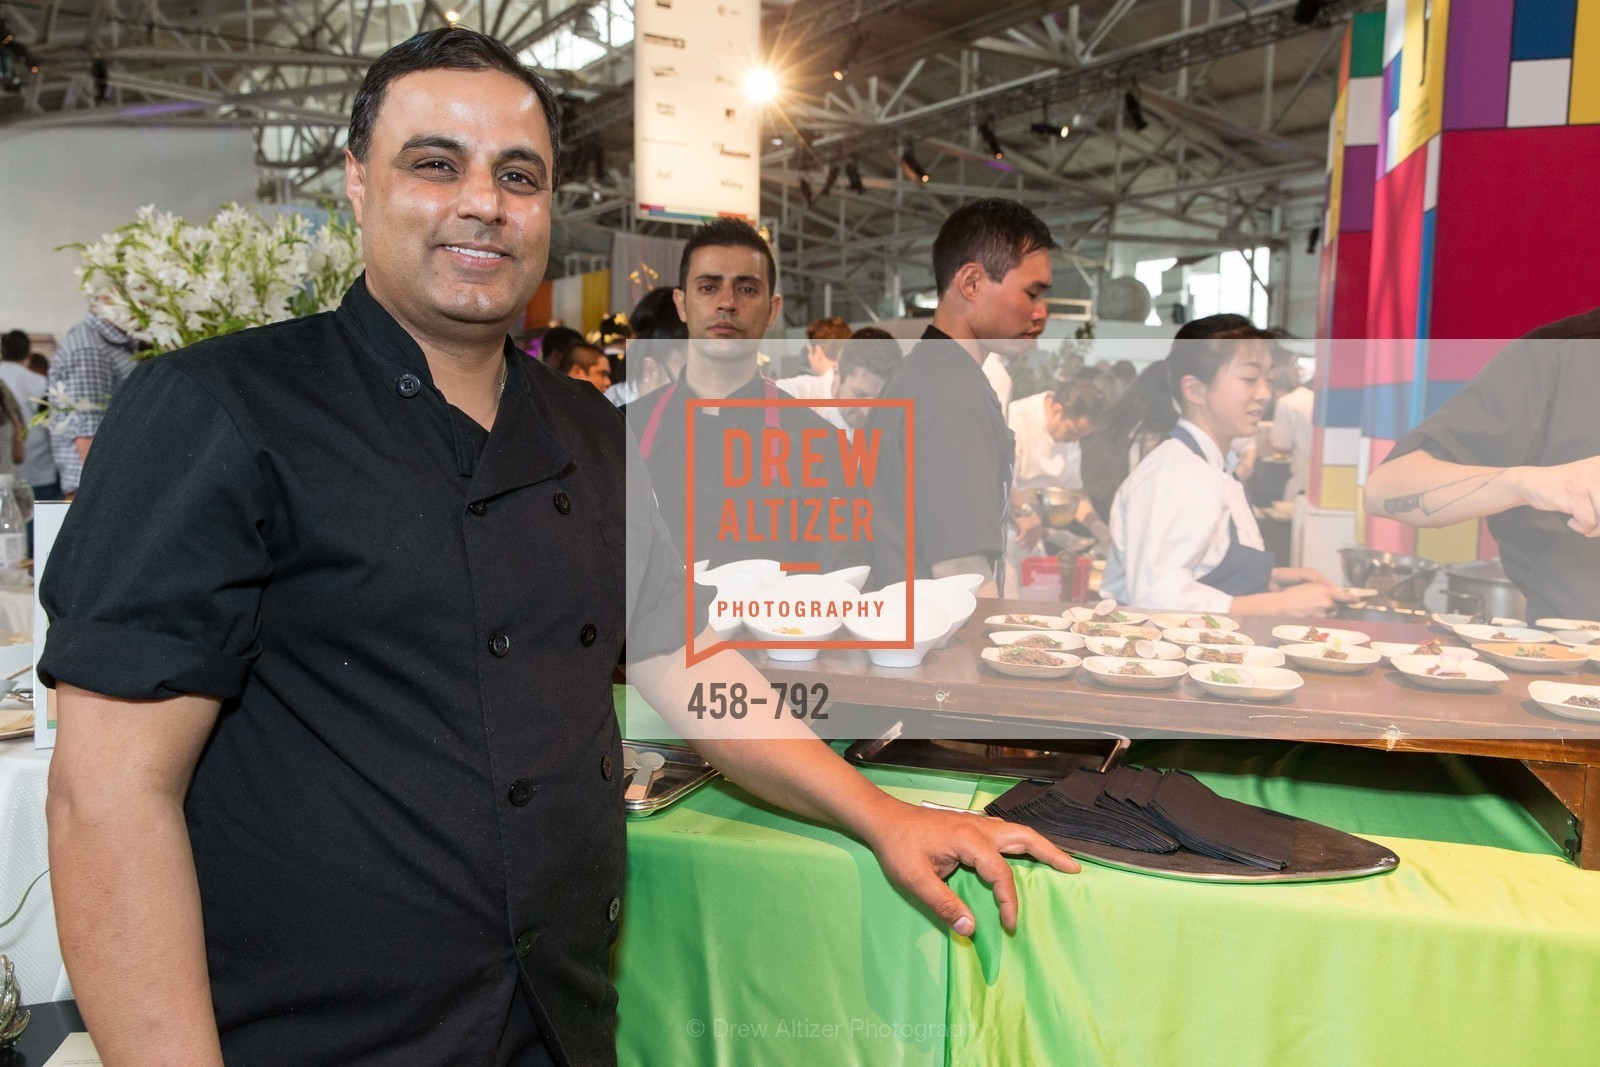 Sachin Chopra, MEALS ON WHEELS OF SAN FRANCISCO'S 28th Annual Star Chefs and Vintners Gala, US, April 20th, 2015,Drew Altizer, Drew Altizer Photography, full-service agency, private events, San Francisco photographer, photographer california